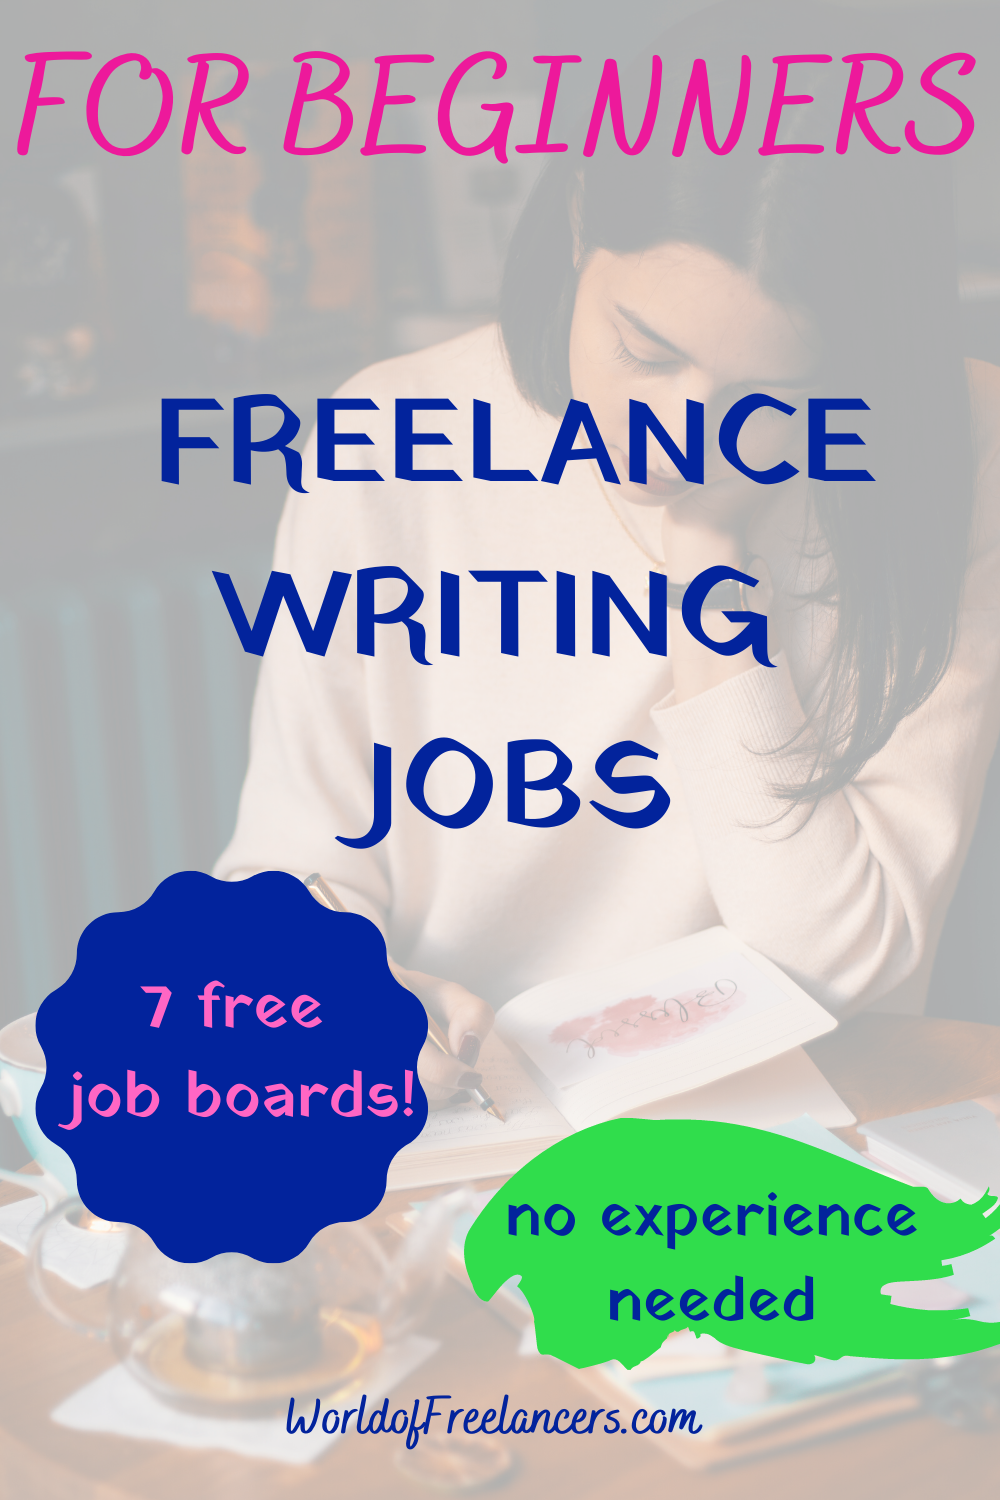 For Beginners - Freelance Writing Jobs - no experience needed